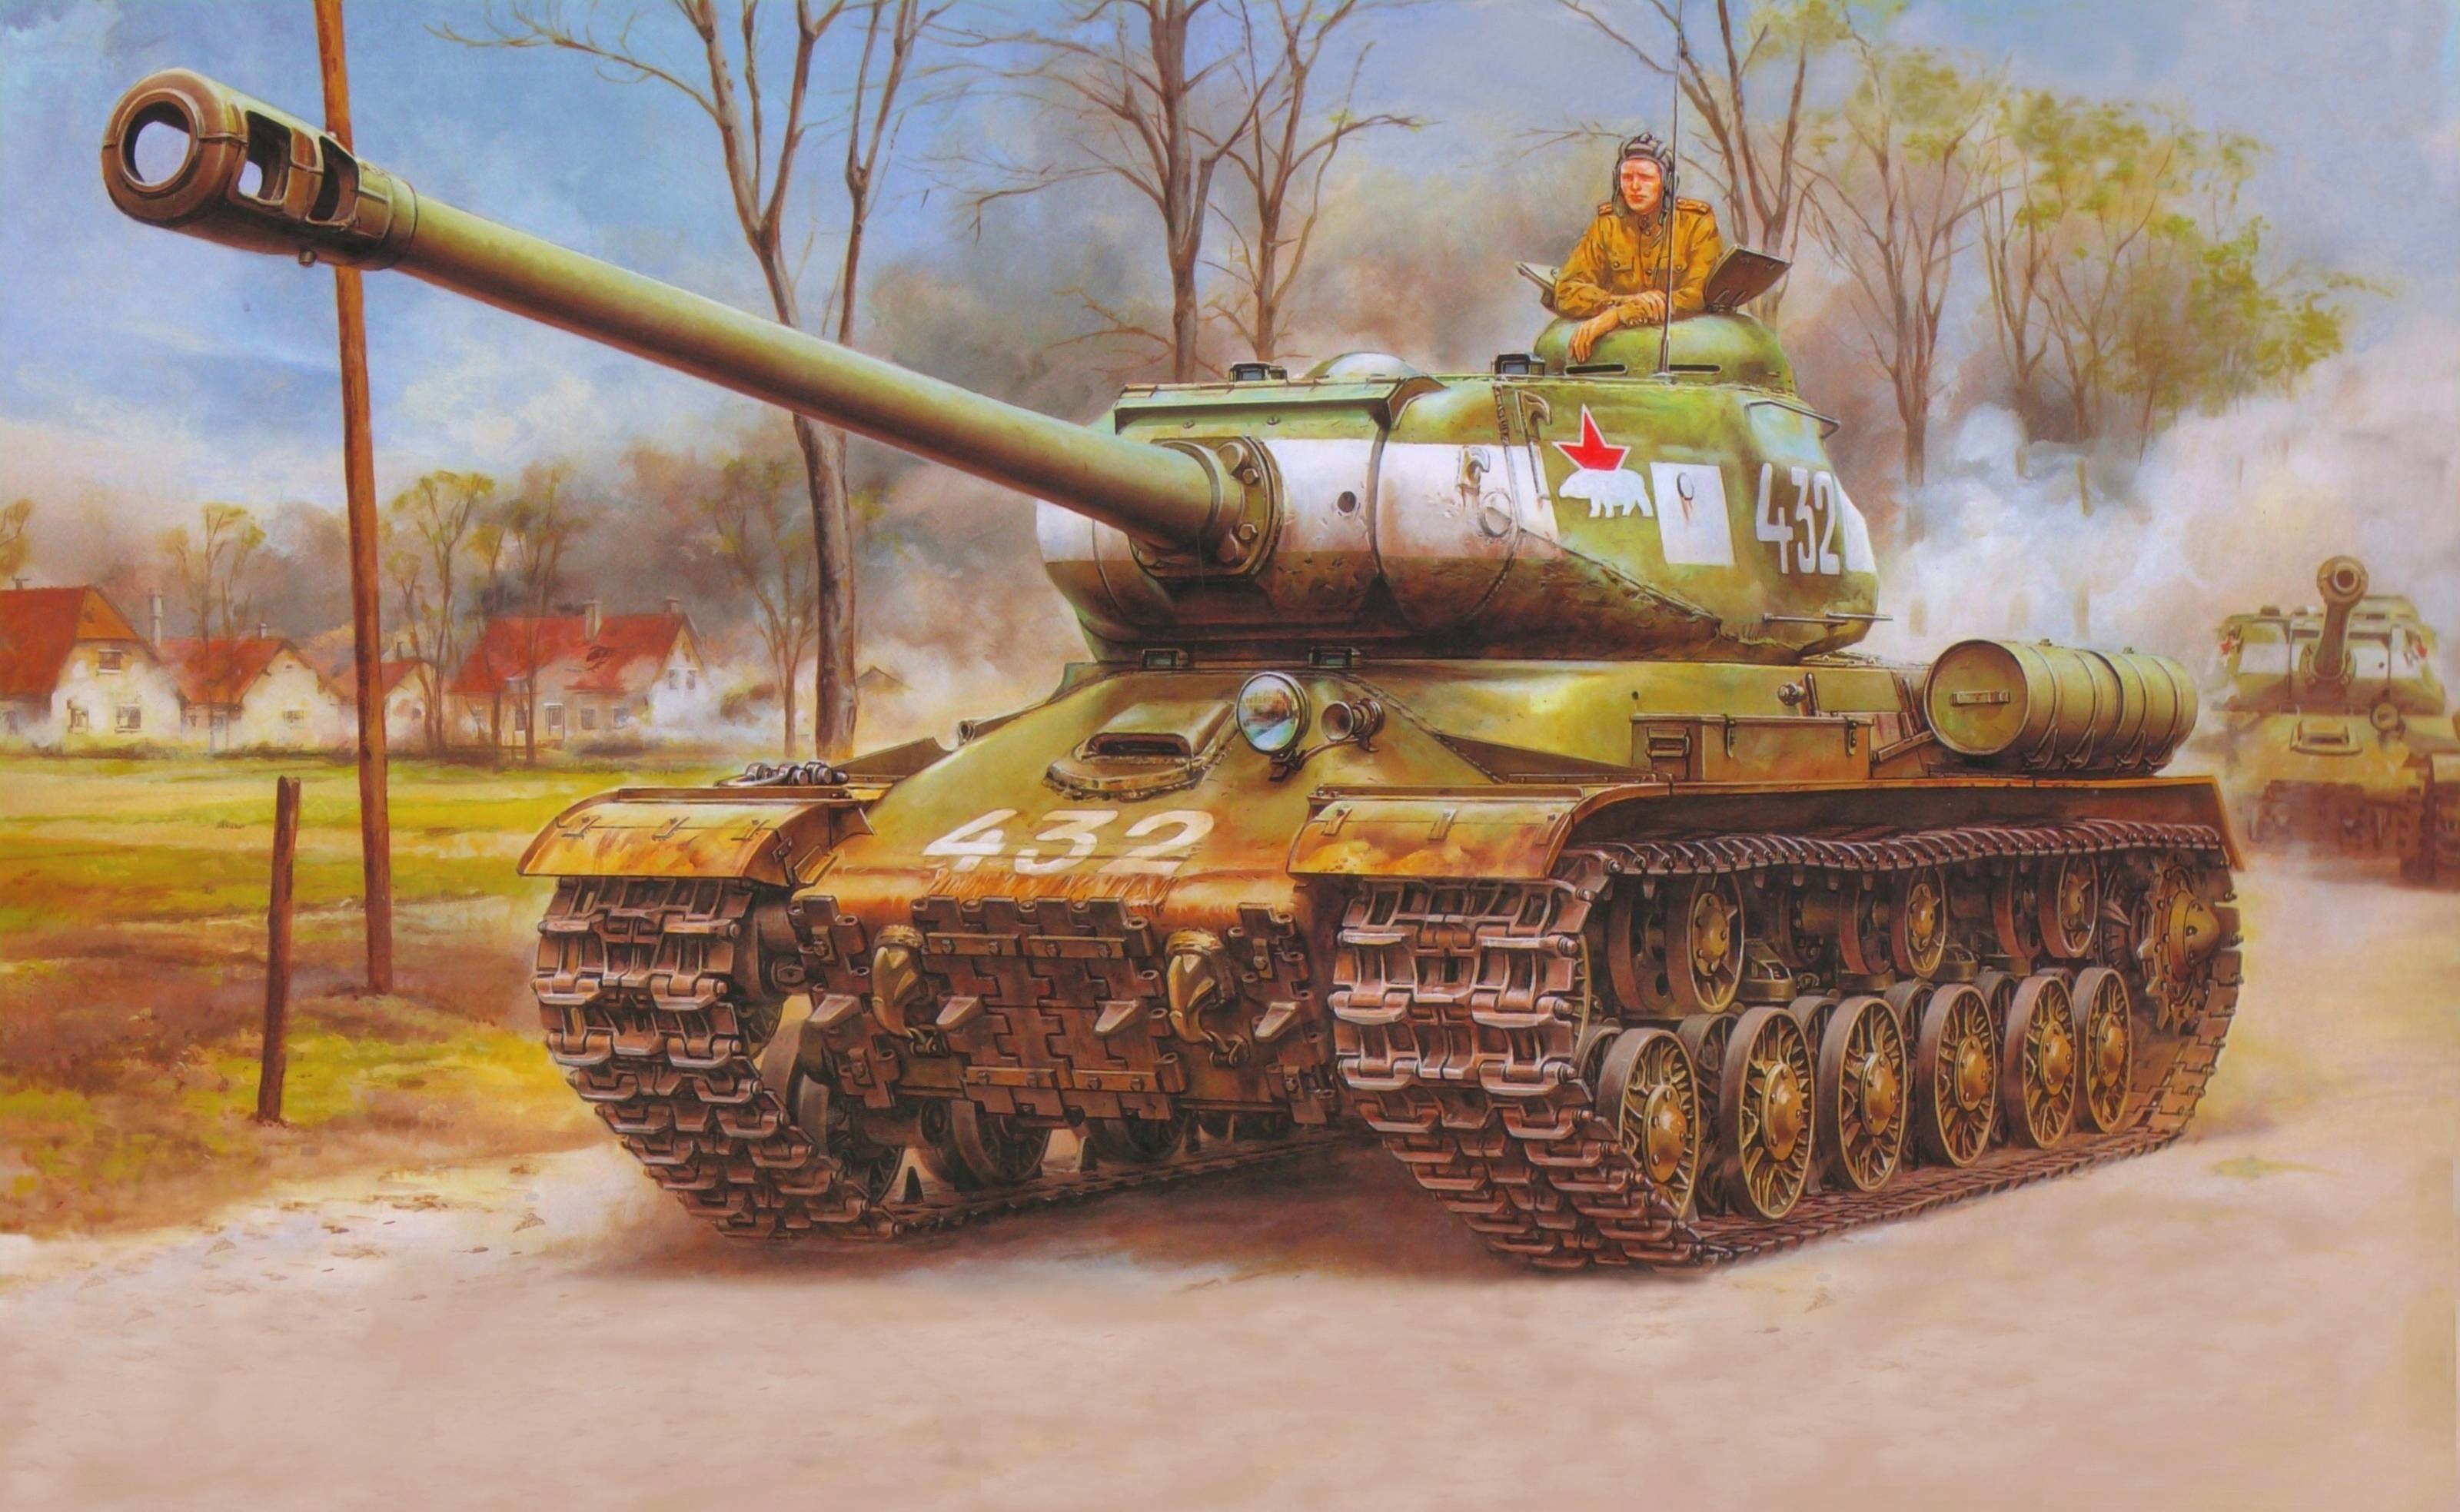 3200x1967 Download wallpaper picture, heavy tank, Joseph Stalin, Red Army .